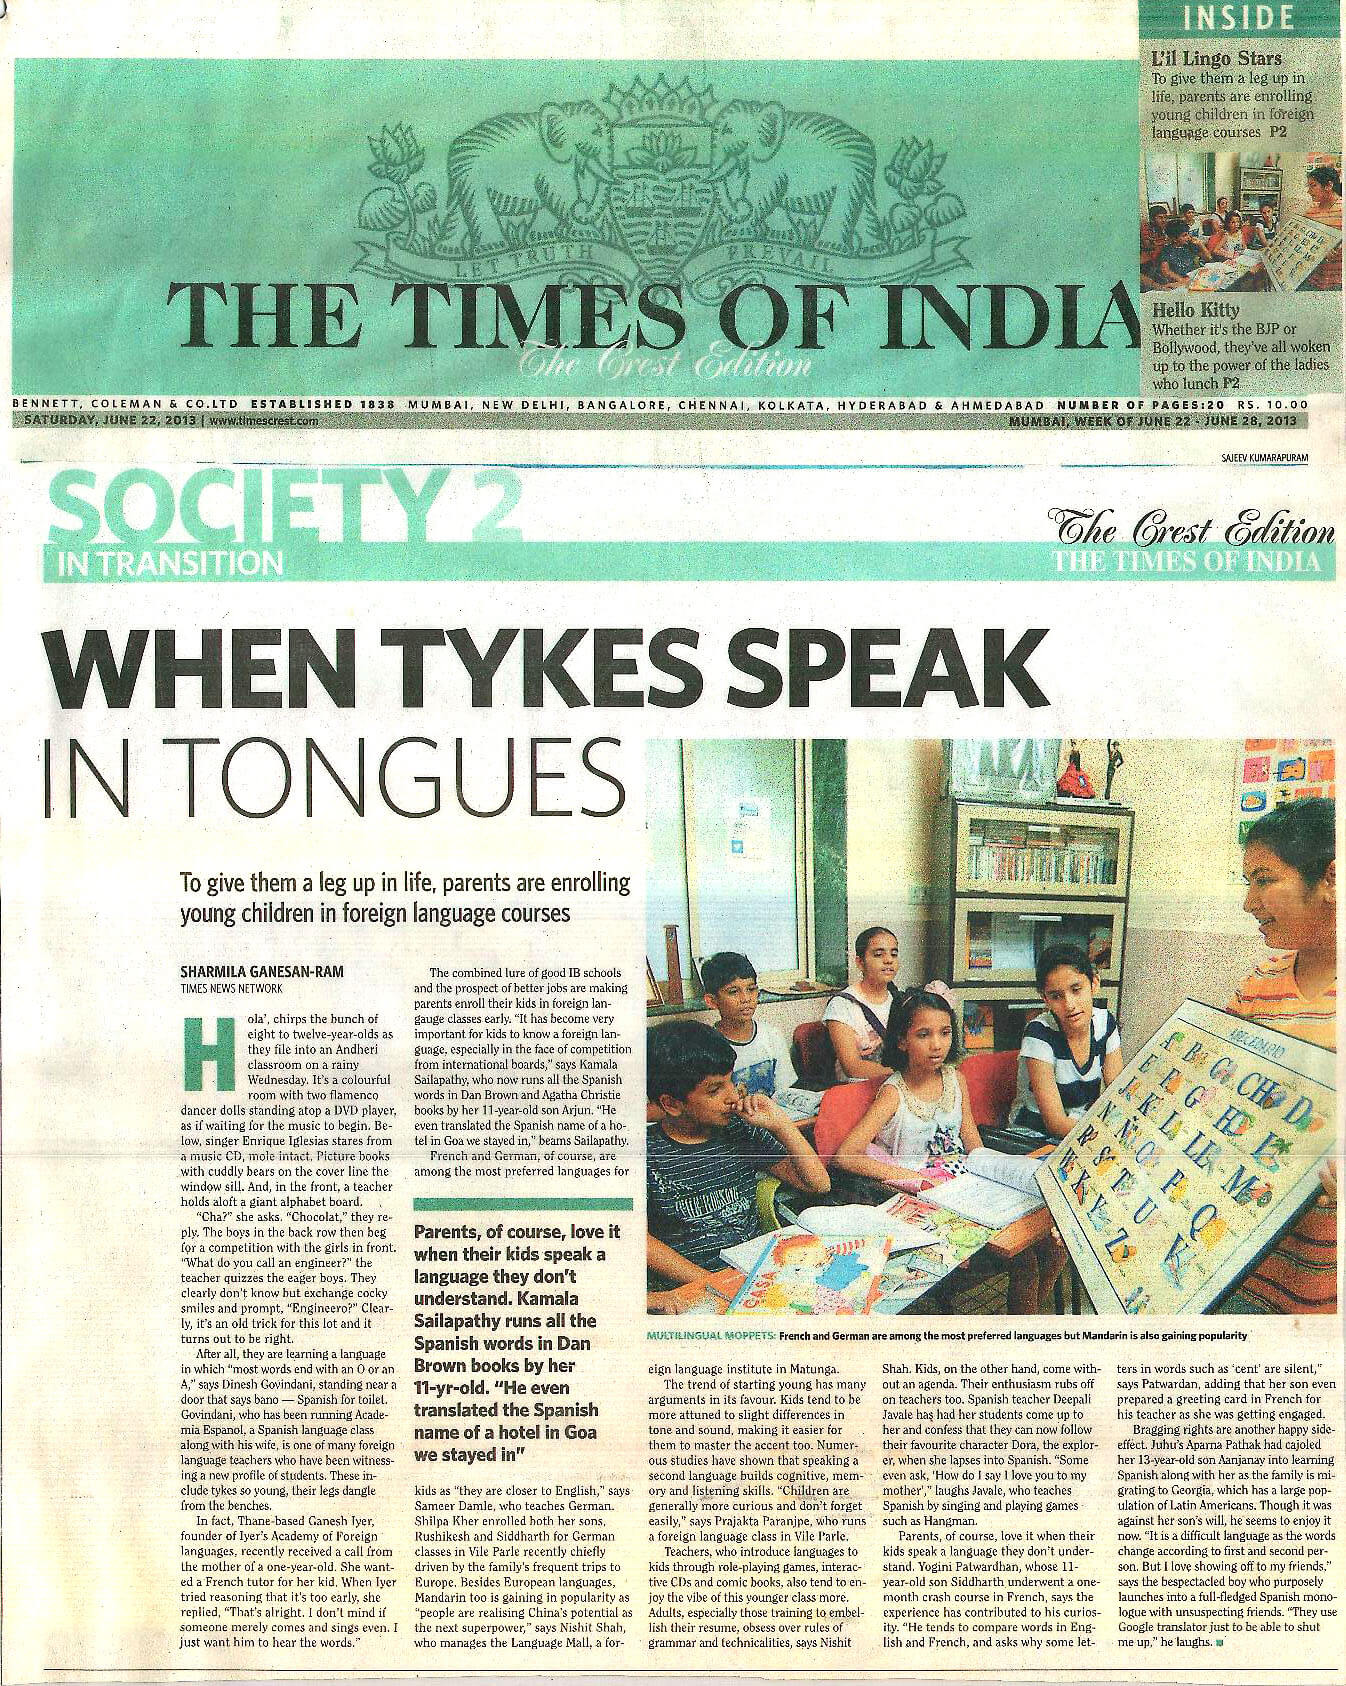 Times of India - When Tykes Speak in Tongues